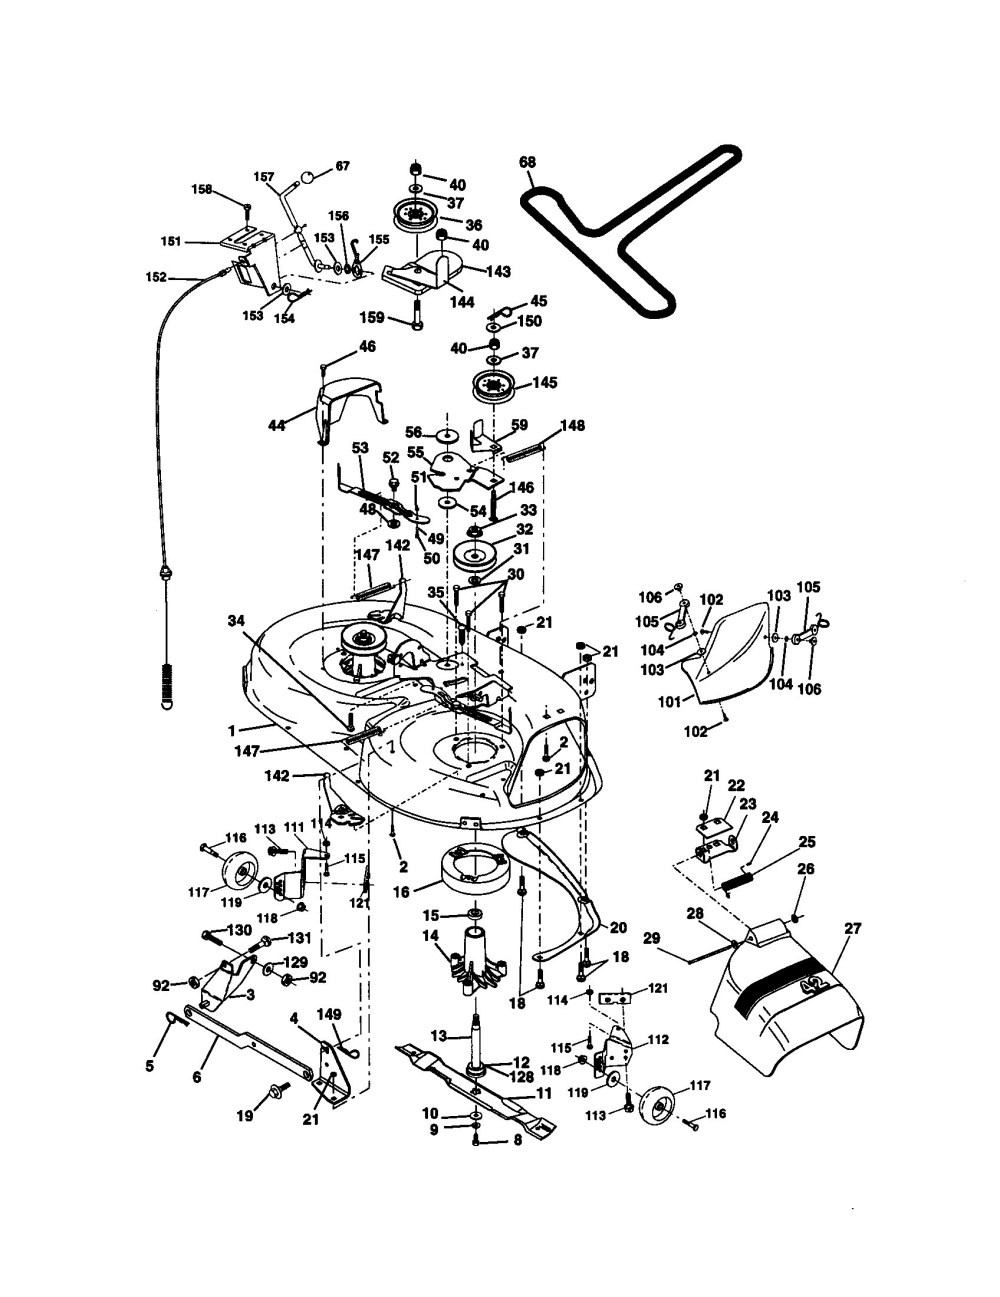 medium resolution of briggs and stratton 17 5 hp engine diagram wiring diagrambriggs and stratton 17 5 hp engine